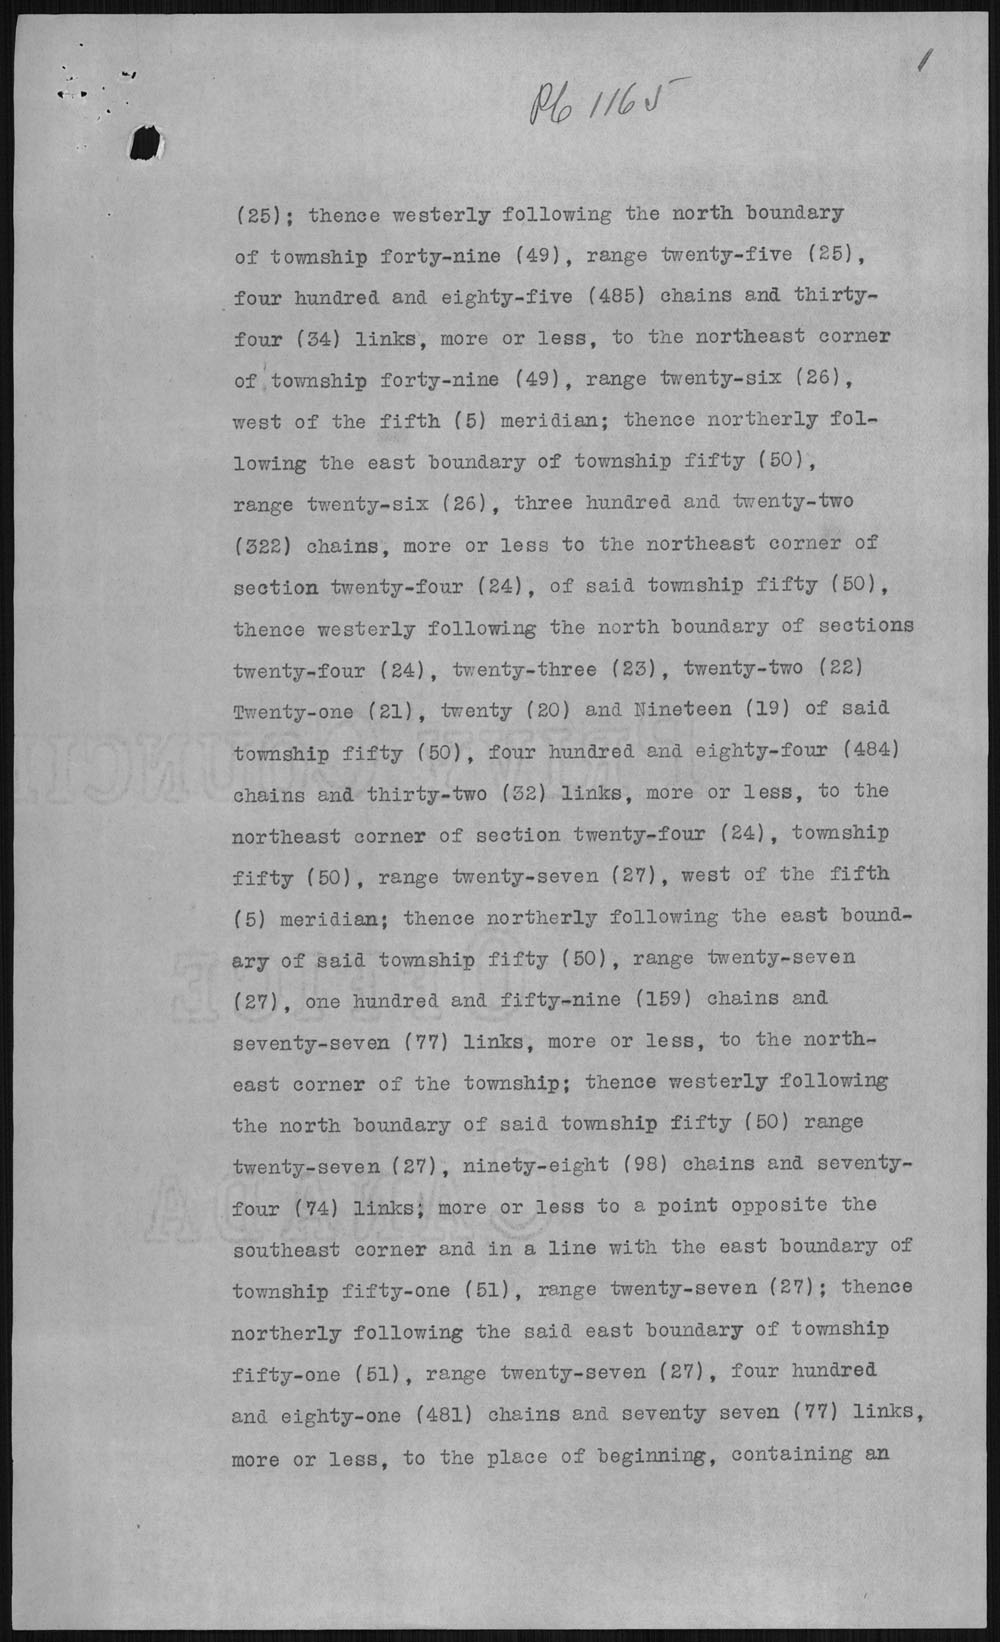 Digitized page of Orders in Council for Image No.: e010877240-v8